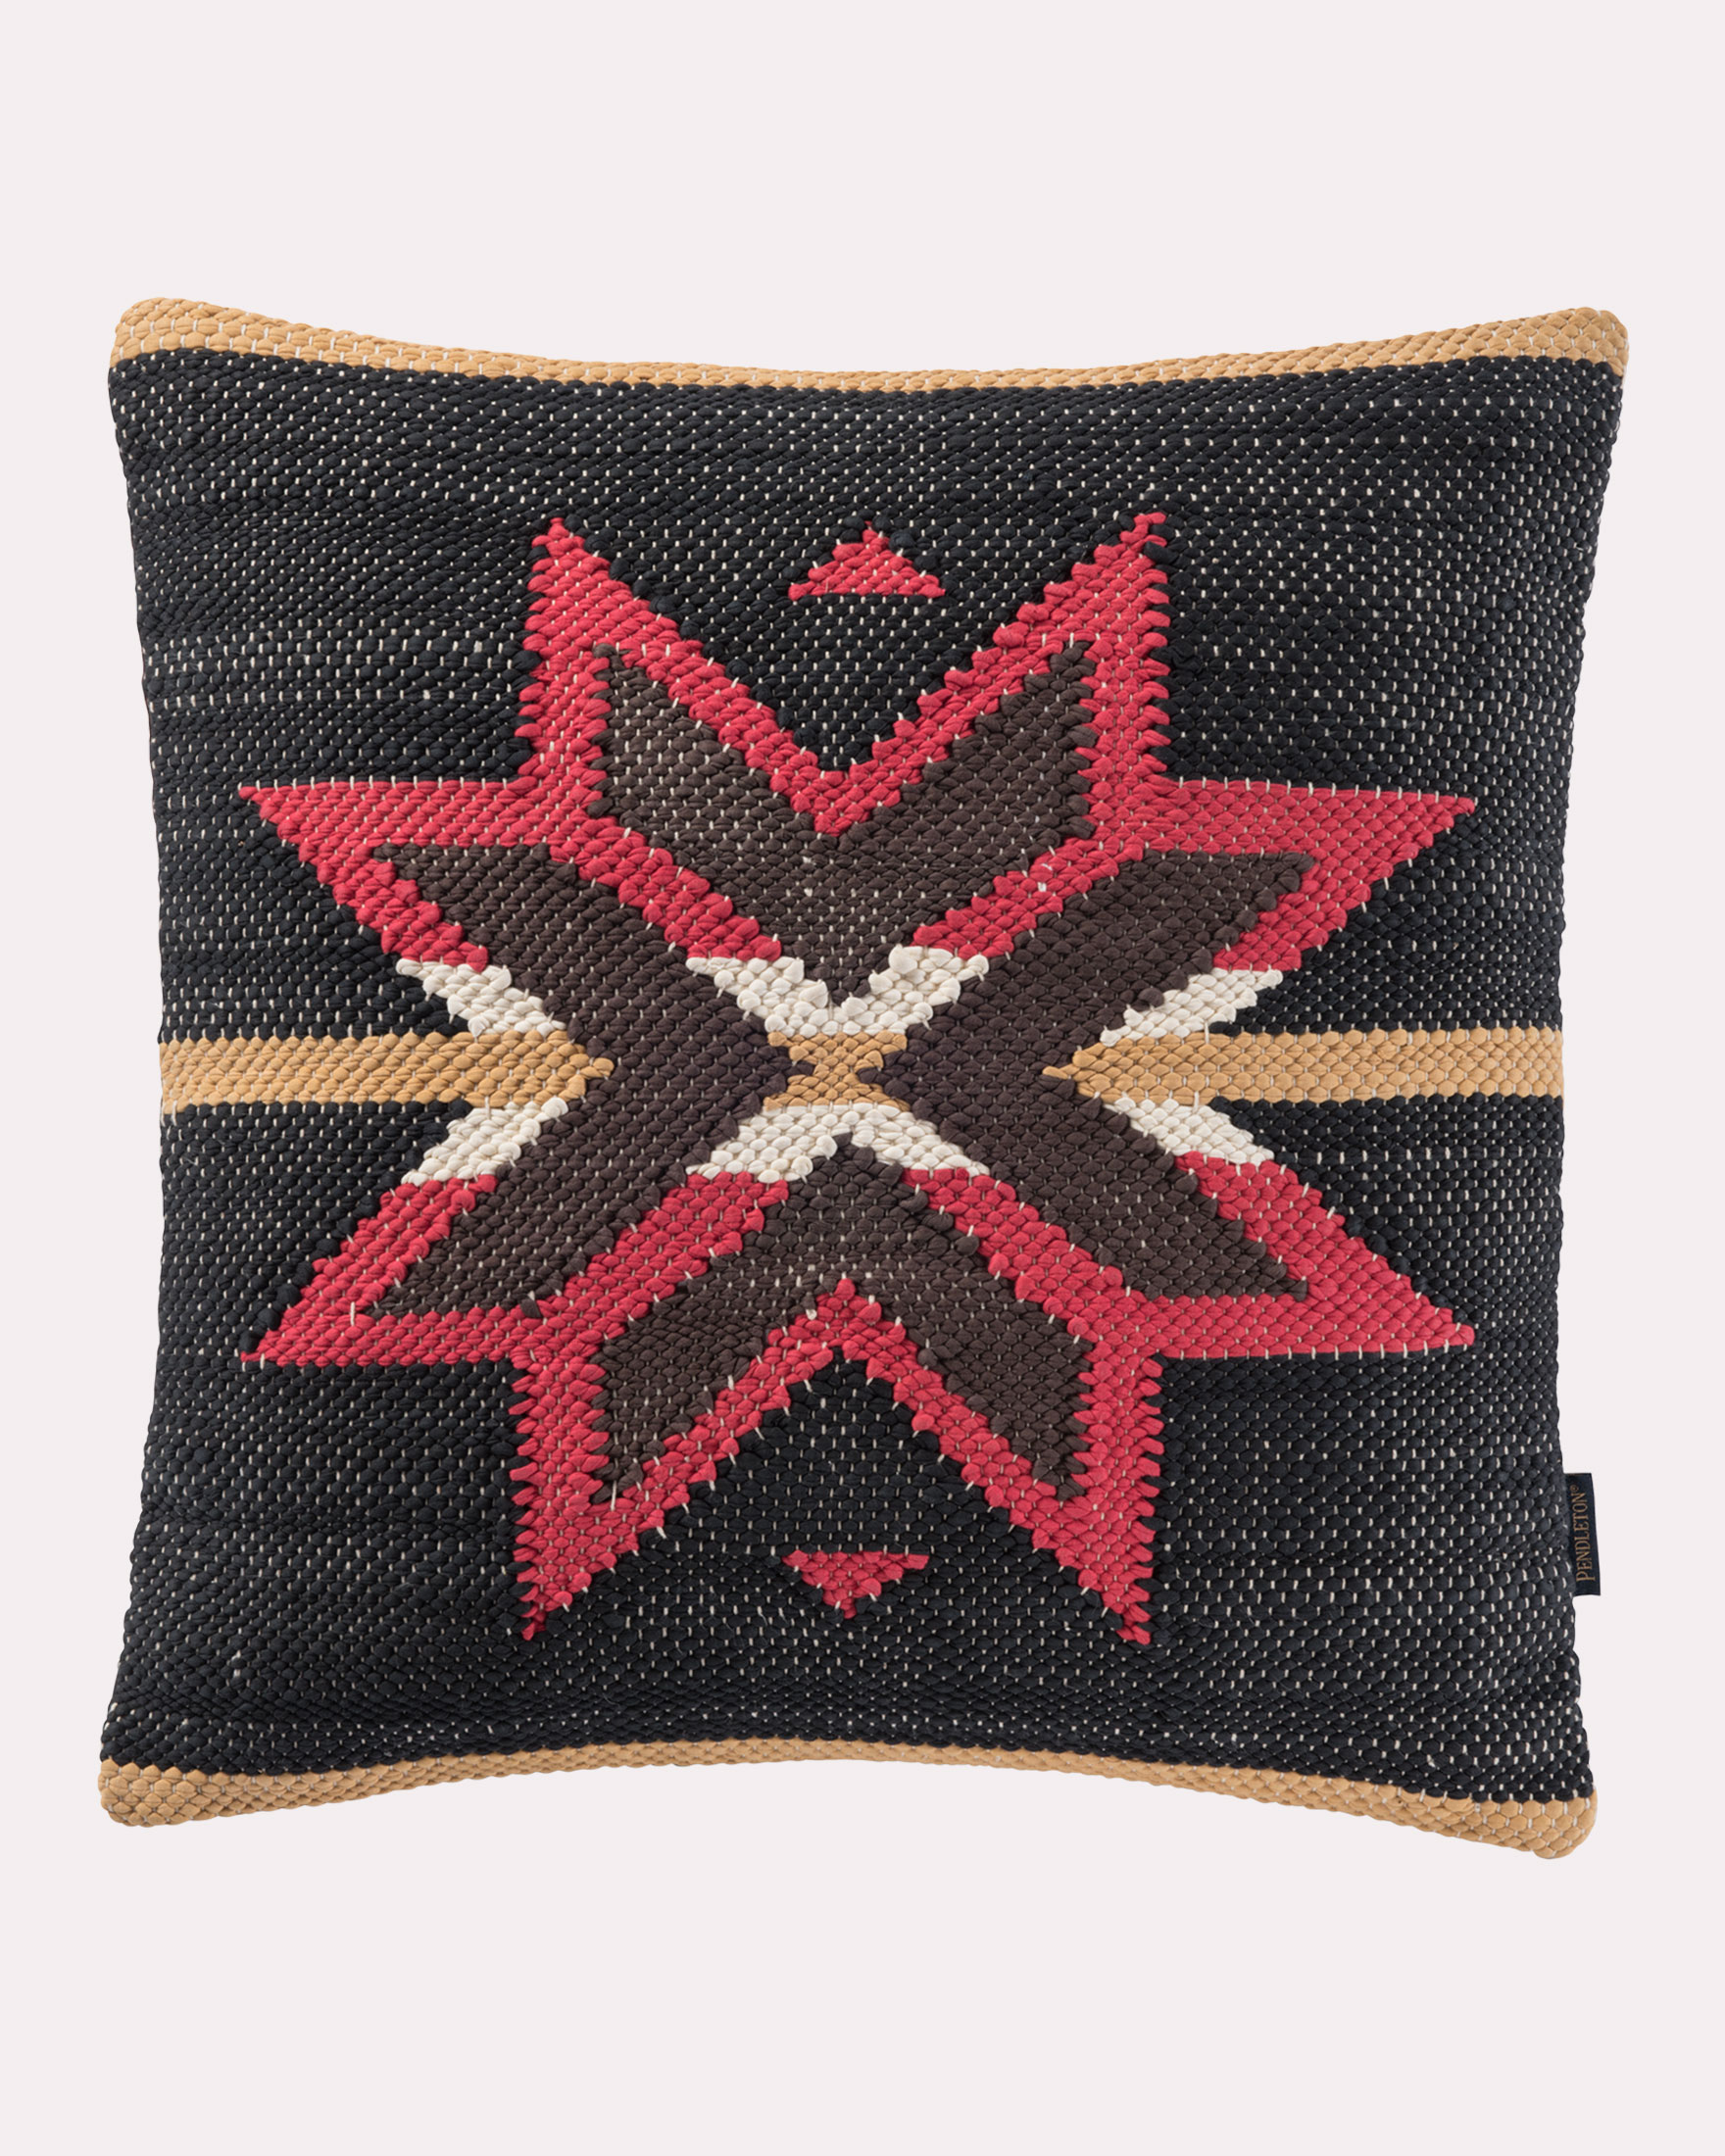 GATEKEEPER WOVEN CHINDI PILLOW